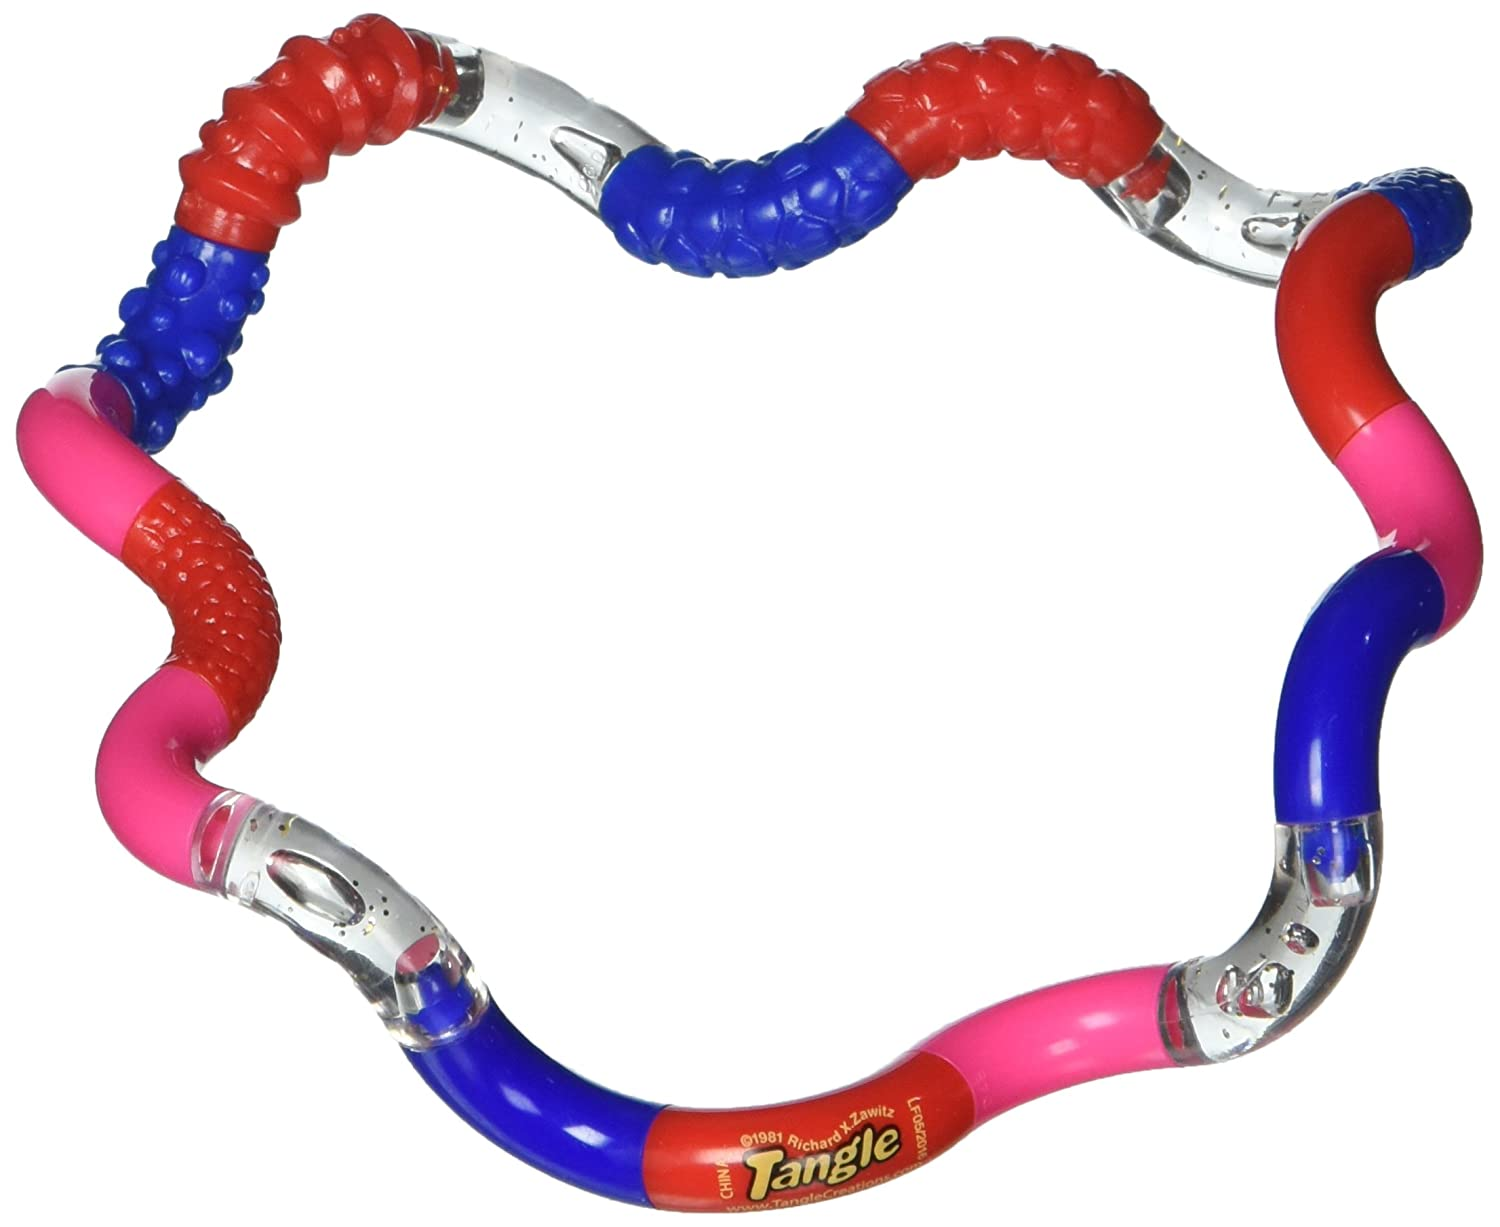 Tangle Jr Textured Sensory Fidget Toy Color May Very